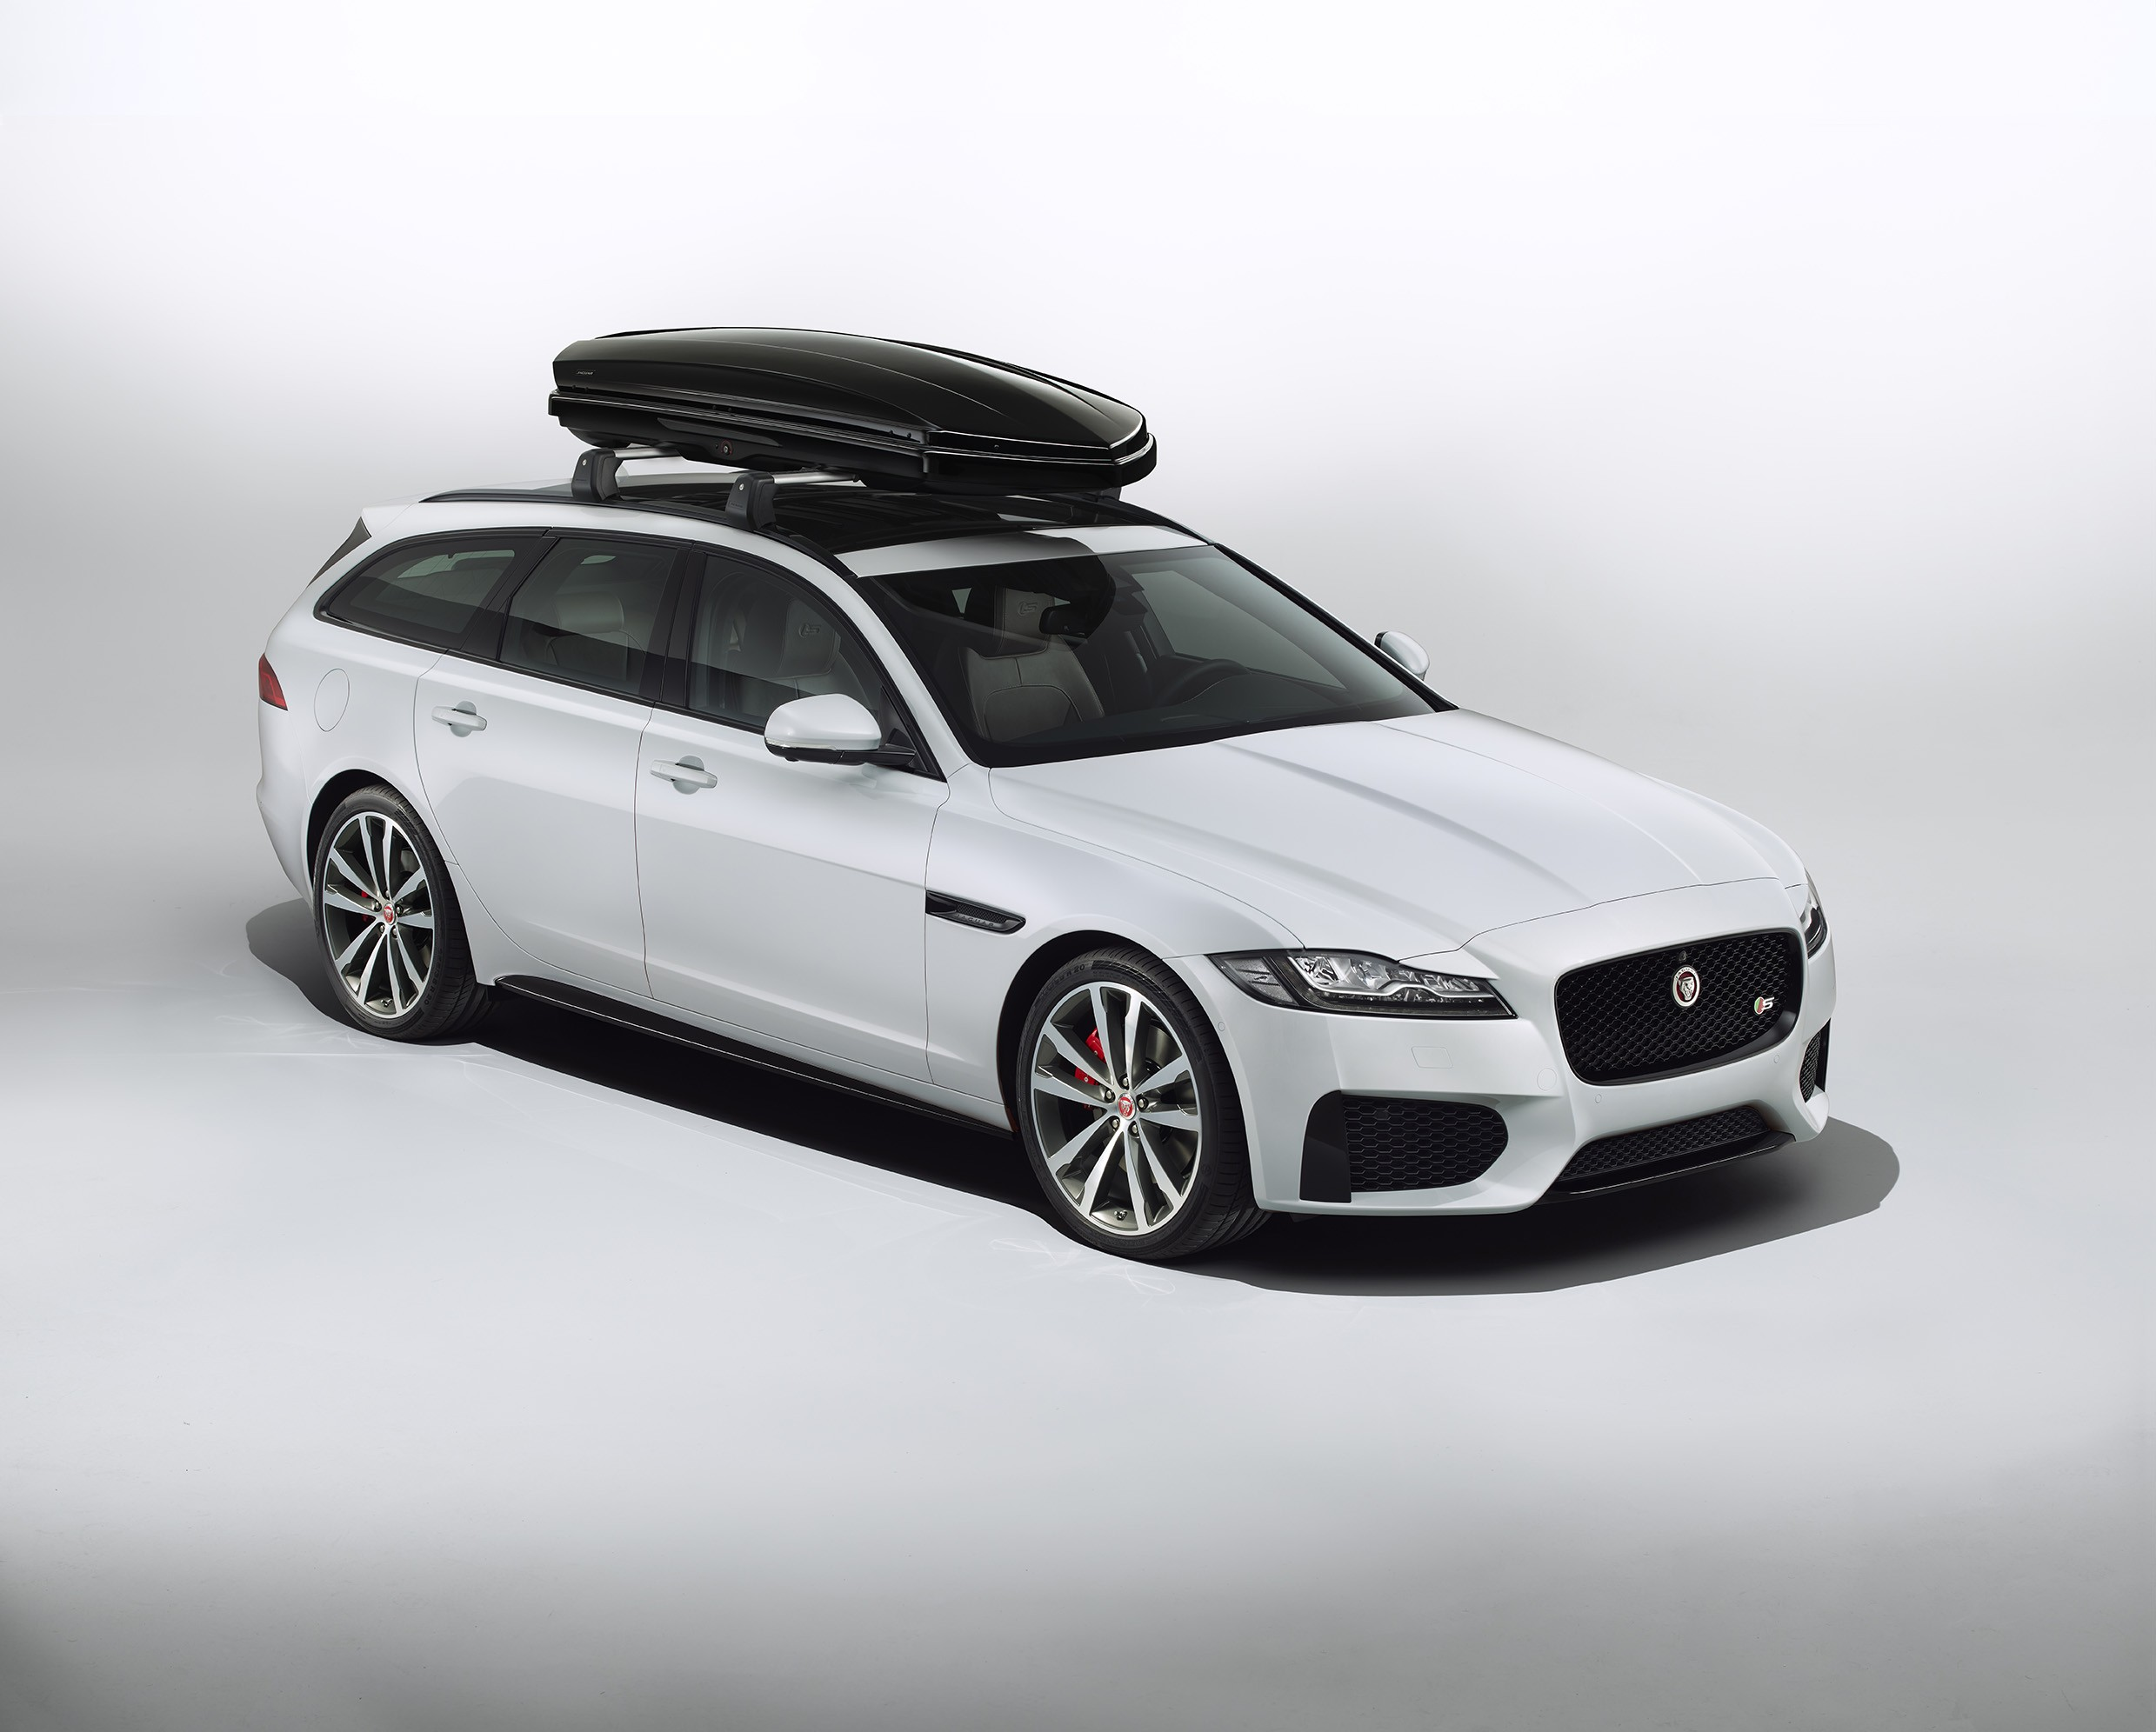 2018 jaguar xf sportbrake coming to the us with sc v6 71445 2018 jaguar xf sportbrake biocorpaavc Gallery